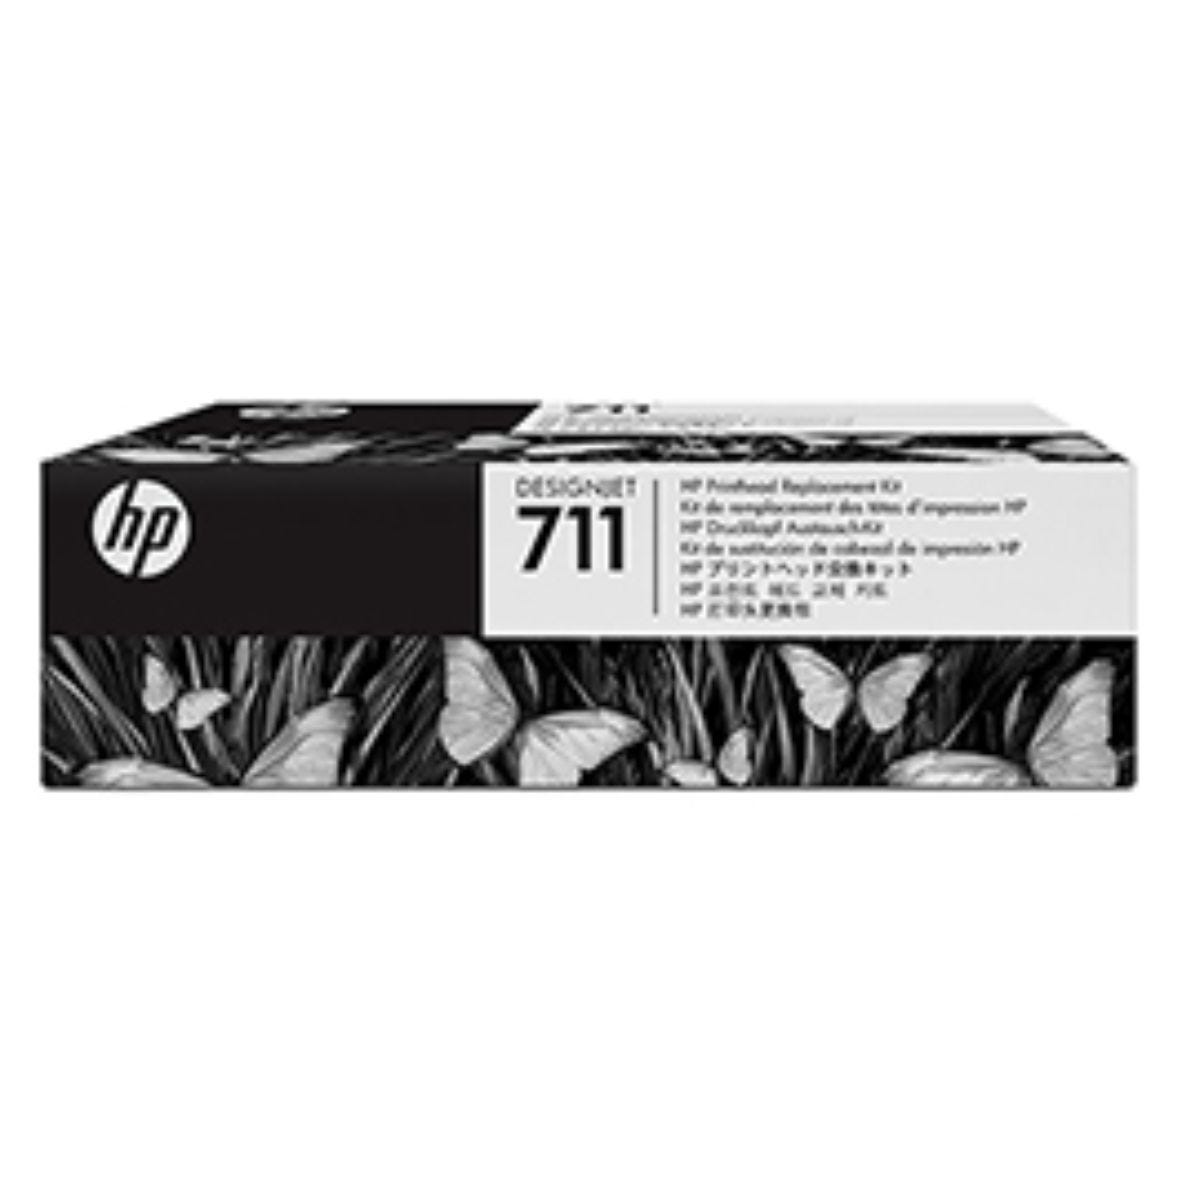 HP 711 Printhead Replacement